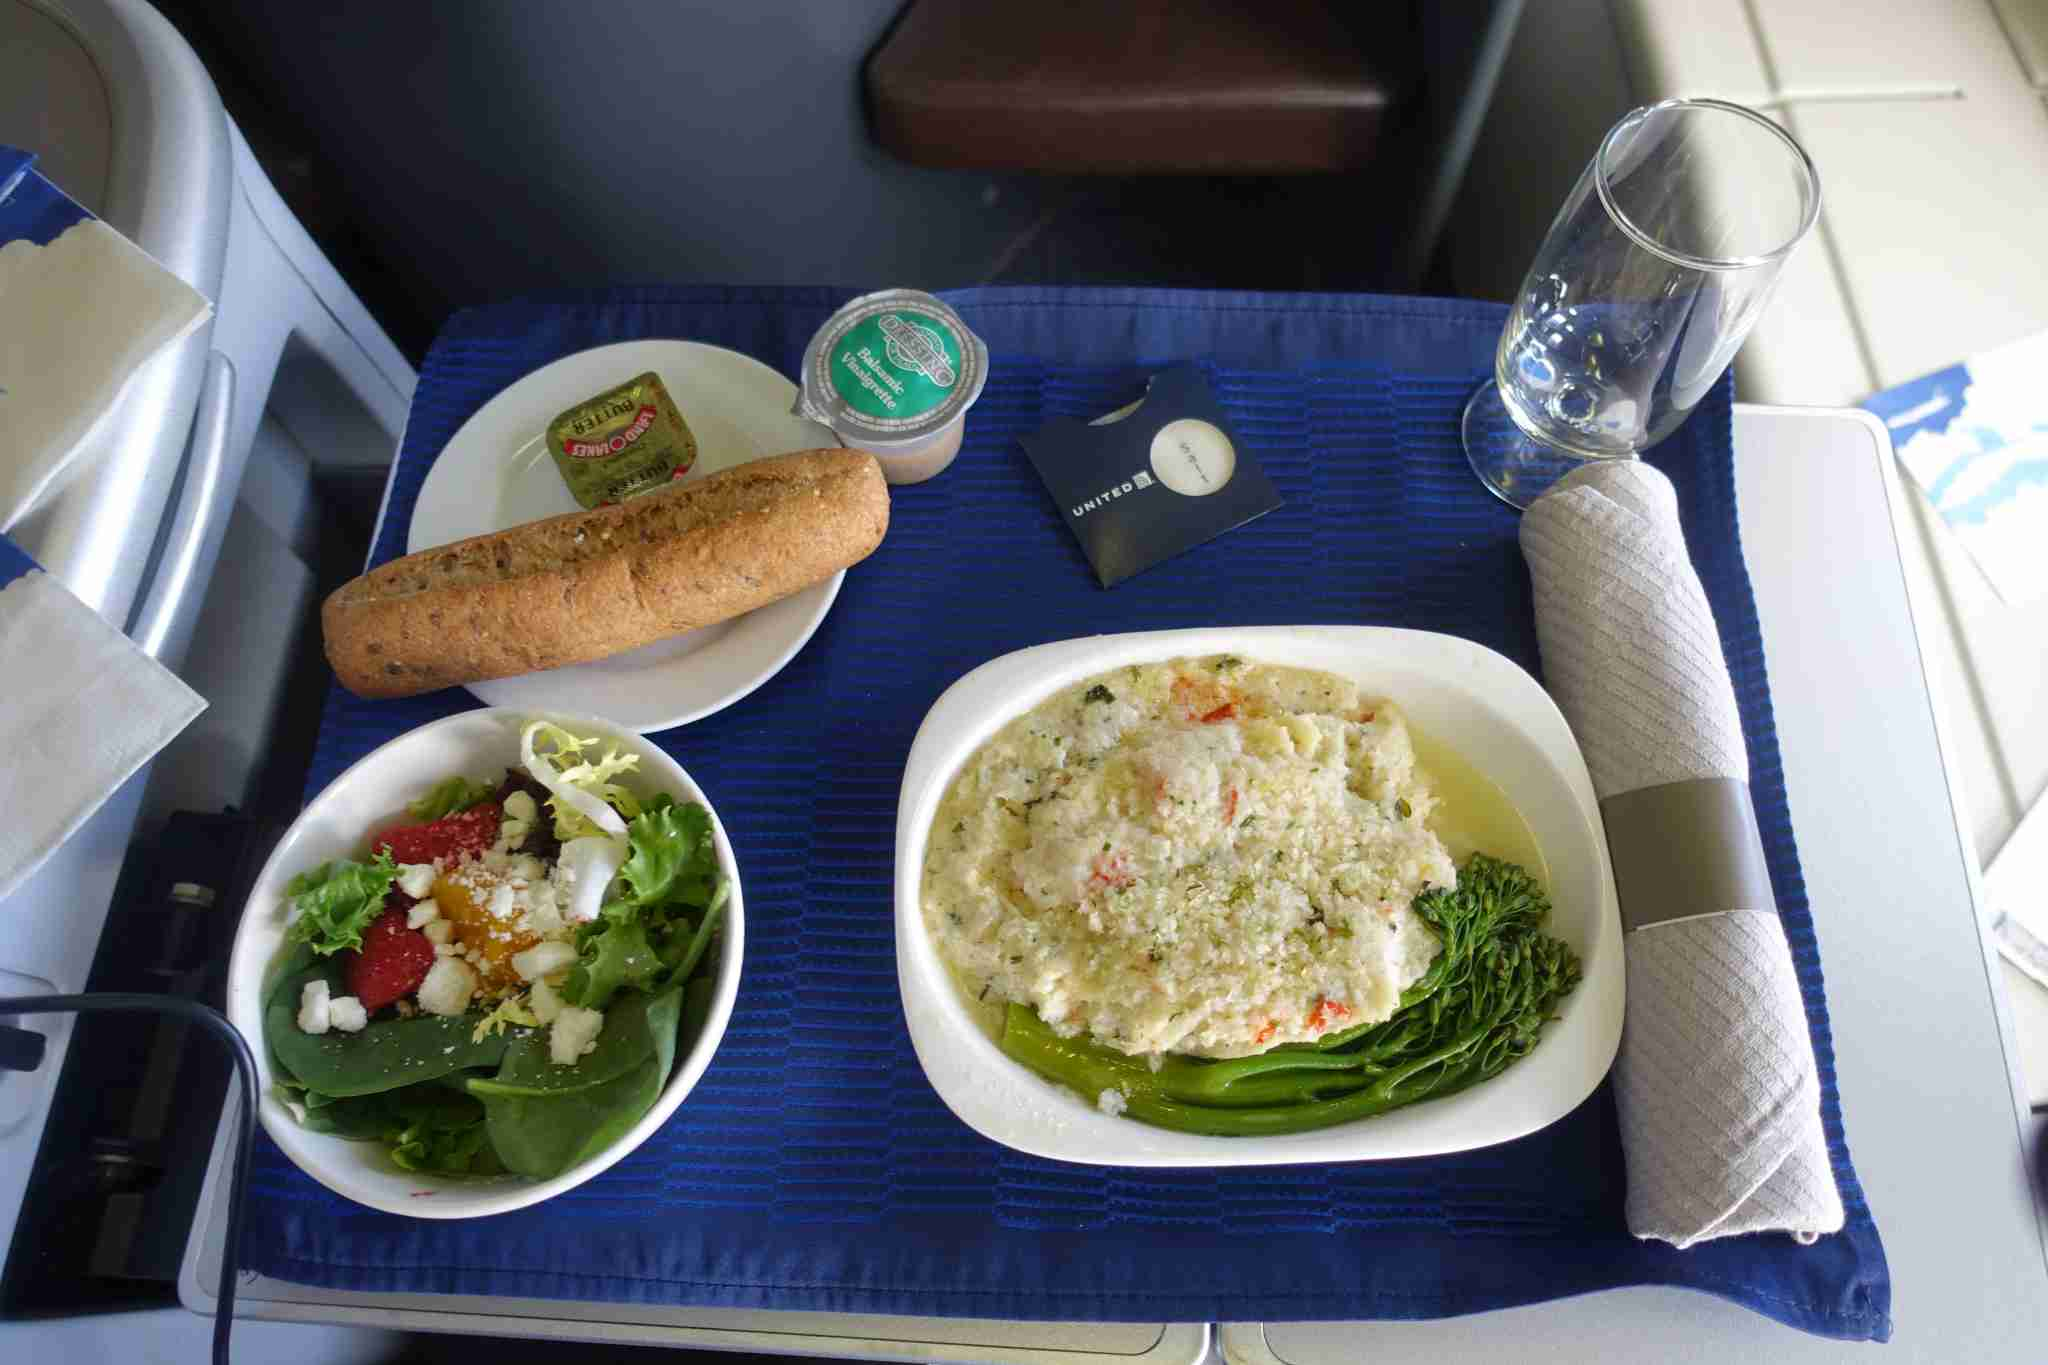 A lobster man & cheese with a salad, some bread, butter. Nothing special, but not bad for a domestic non-transcon meal.